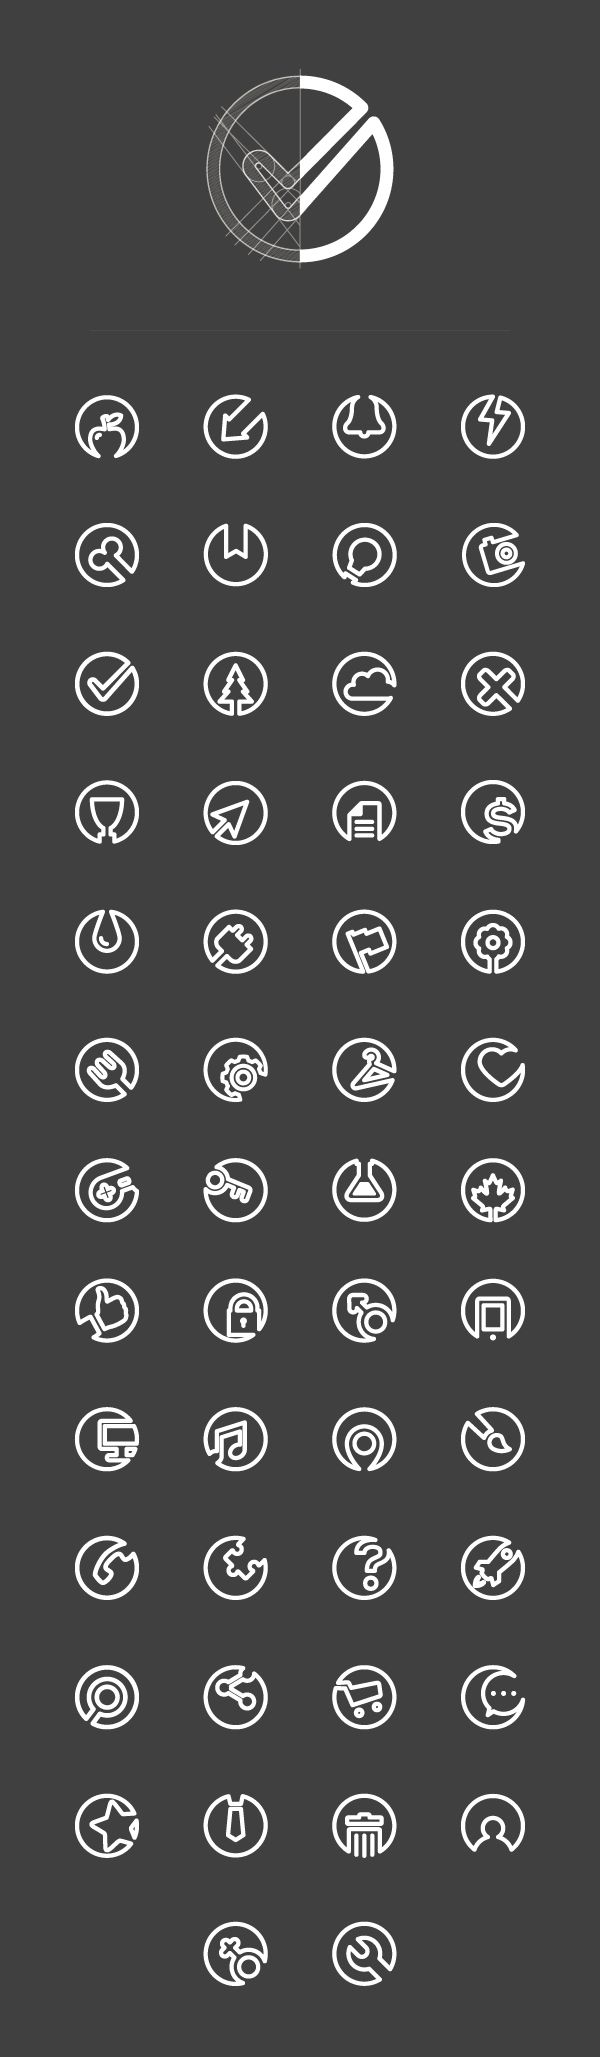 Here are some simple icon designs. I like how easy clean they are and each one…